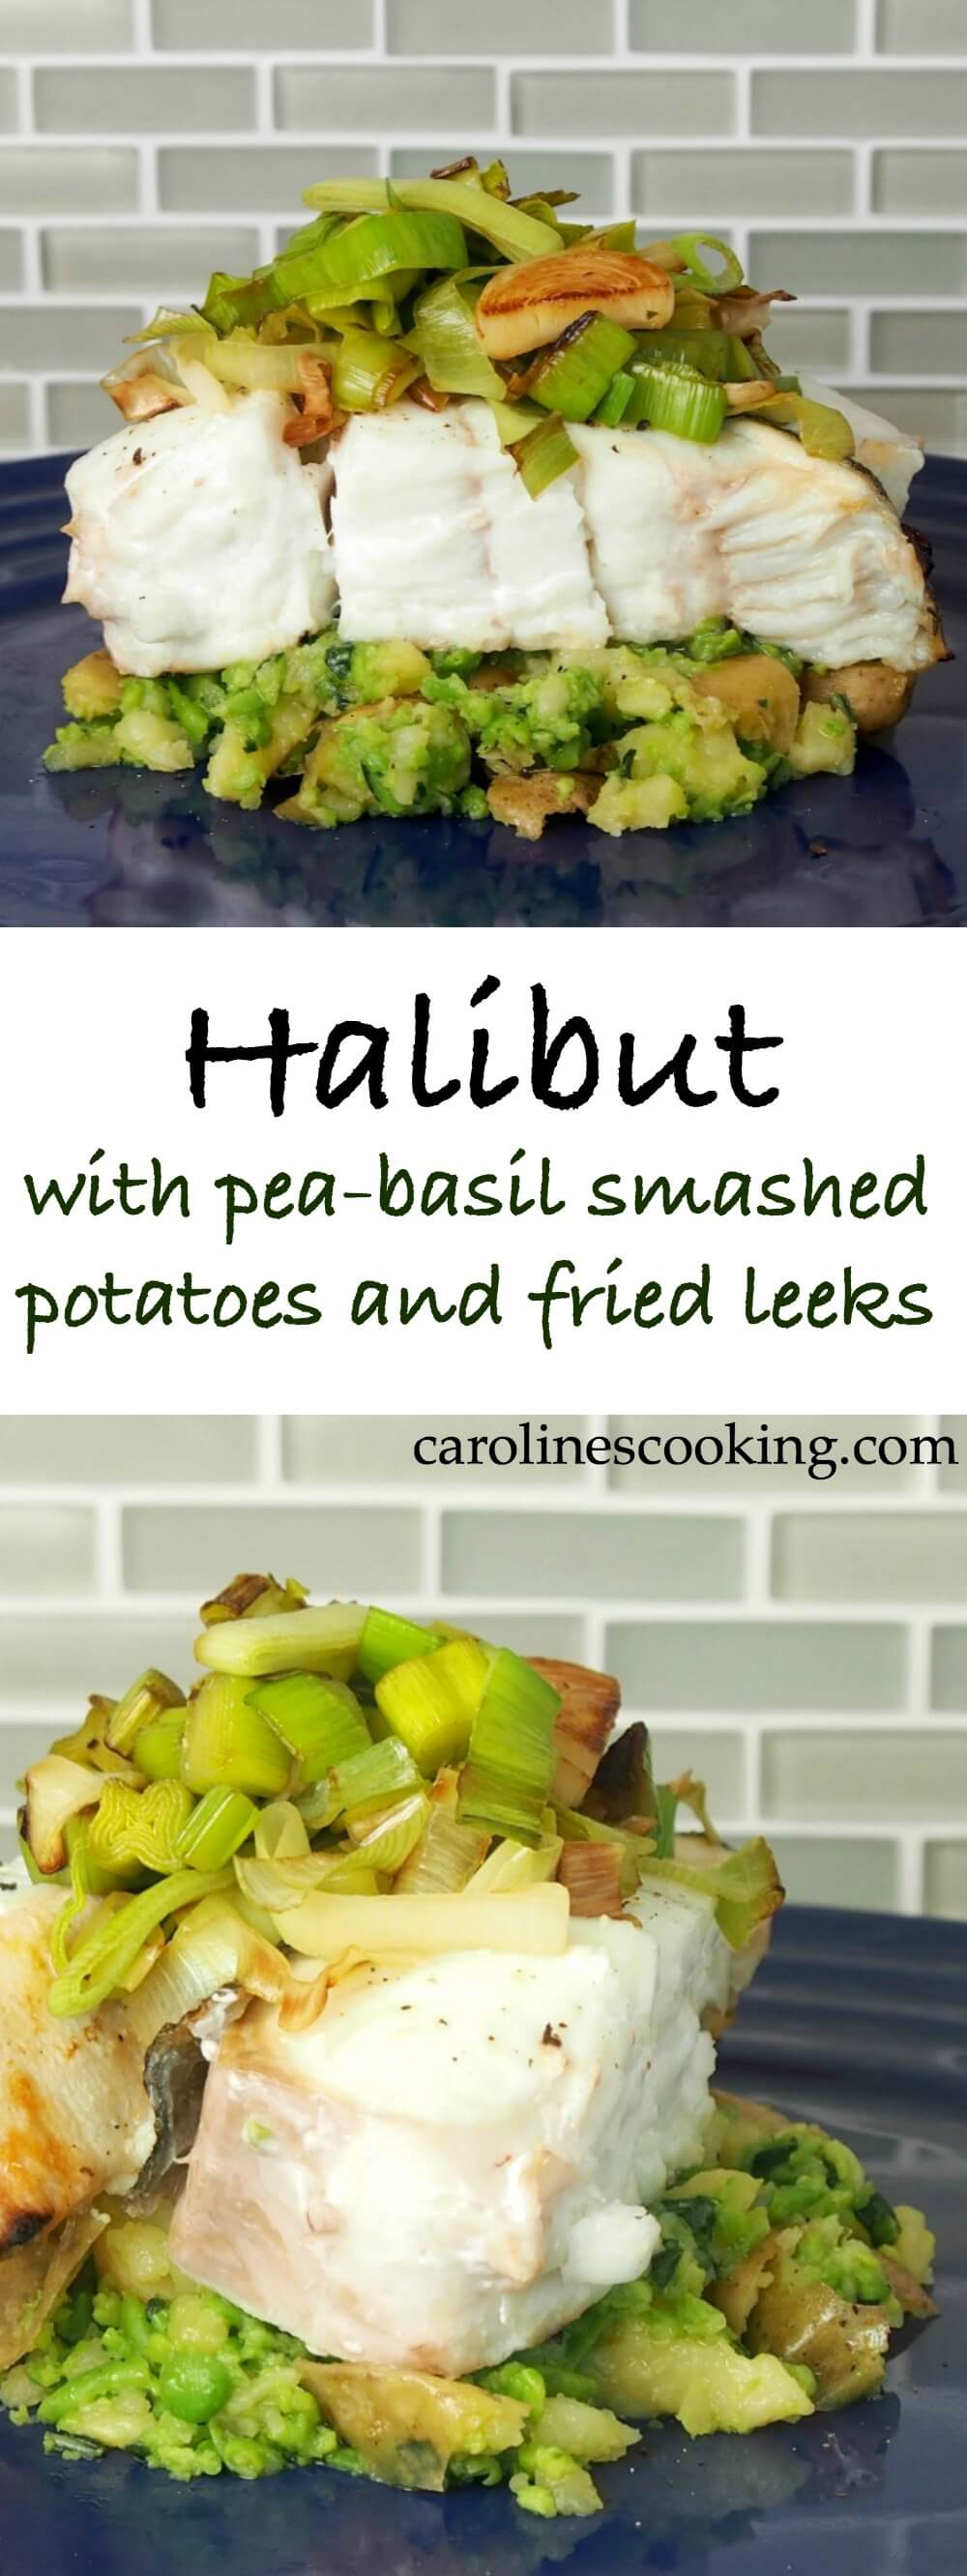 Halibut served with pea-basil smashed potatoes and fried leeks is like a restaurant-style meal but it's easy enough to make at home. Lots of complimentary flavors, fresh and delicious.